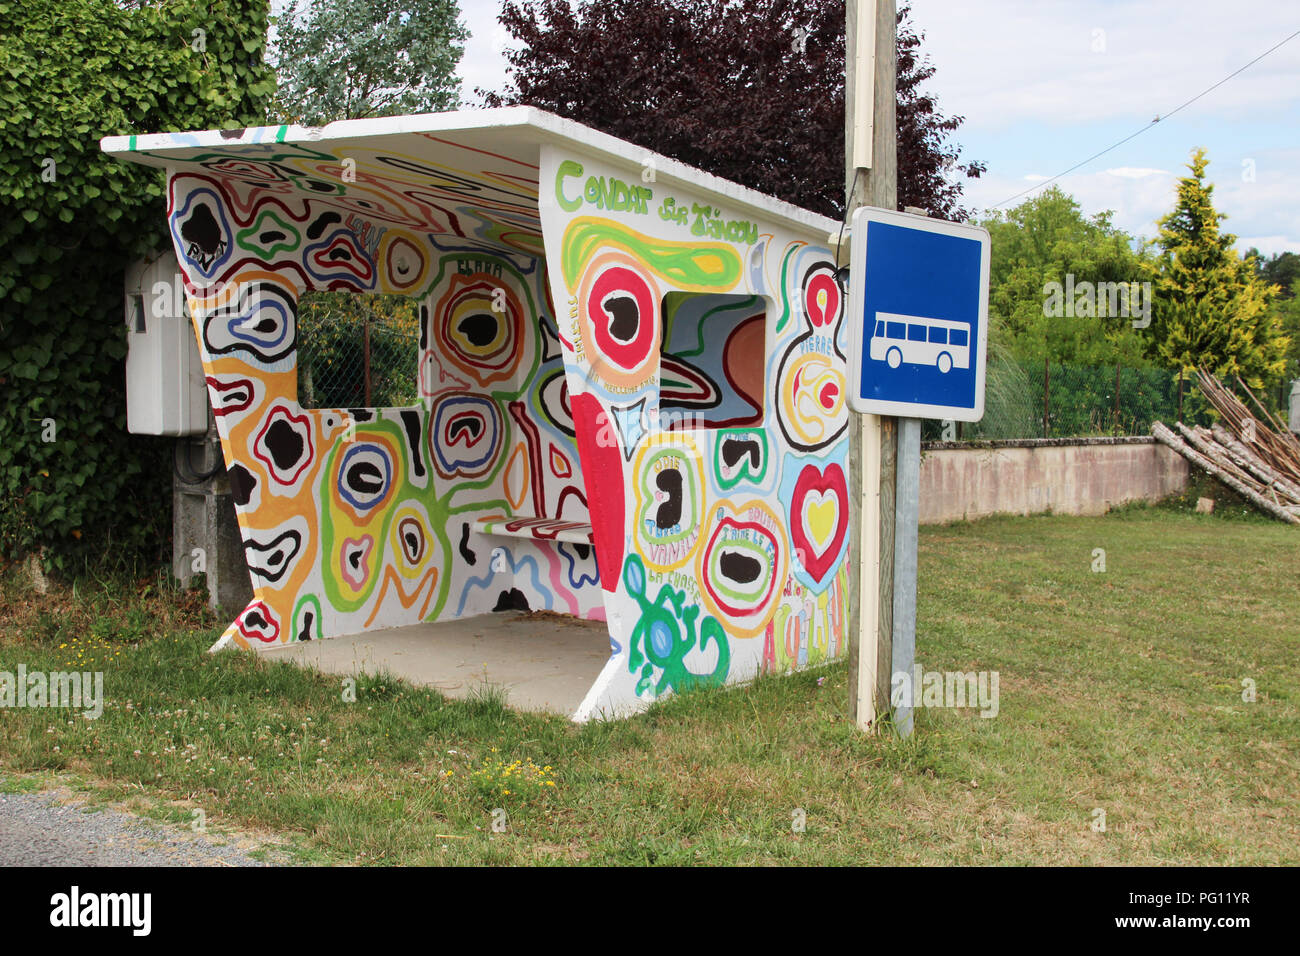 Country bus shelter hand painted in pyschedelic graffiti by local schoolchildren in village in France - Stock Image